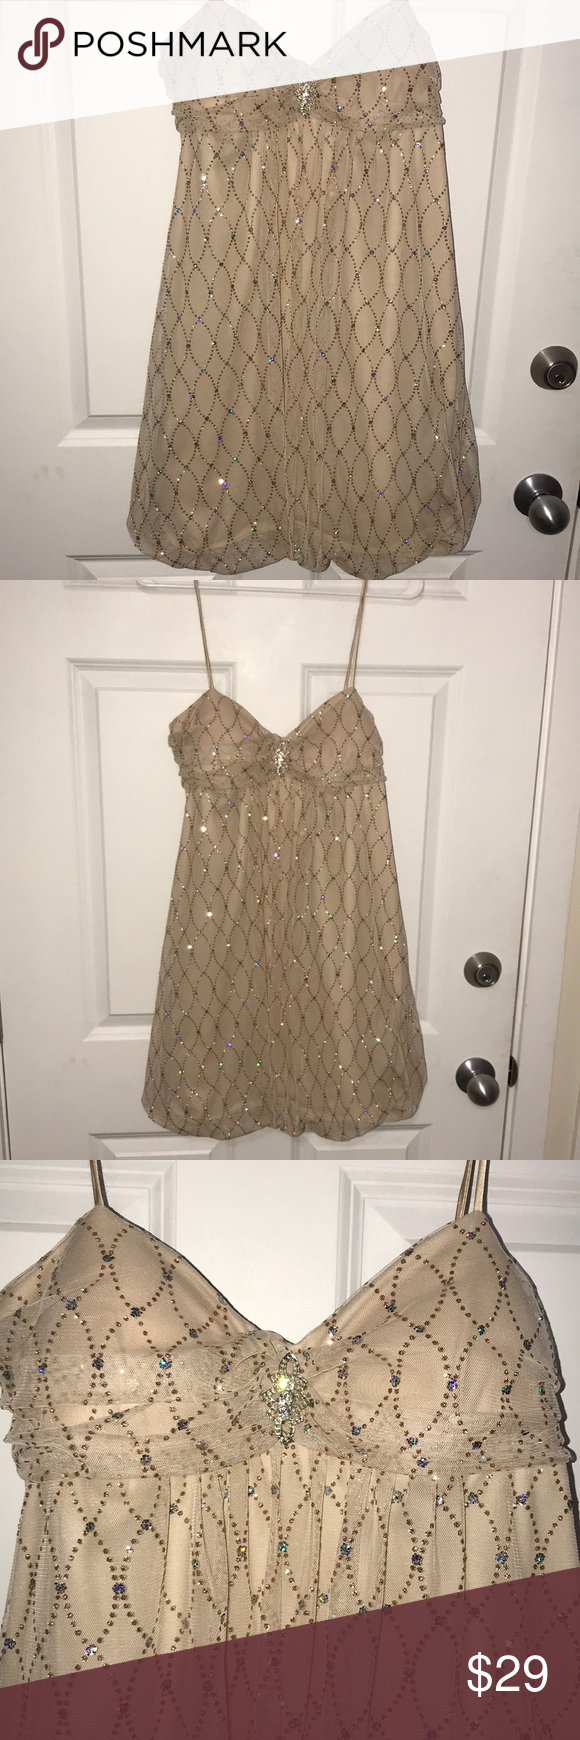 B smart gold jeweled dress tan dress with gauze overlay with gold